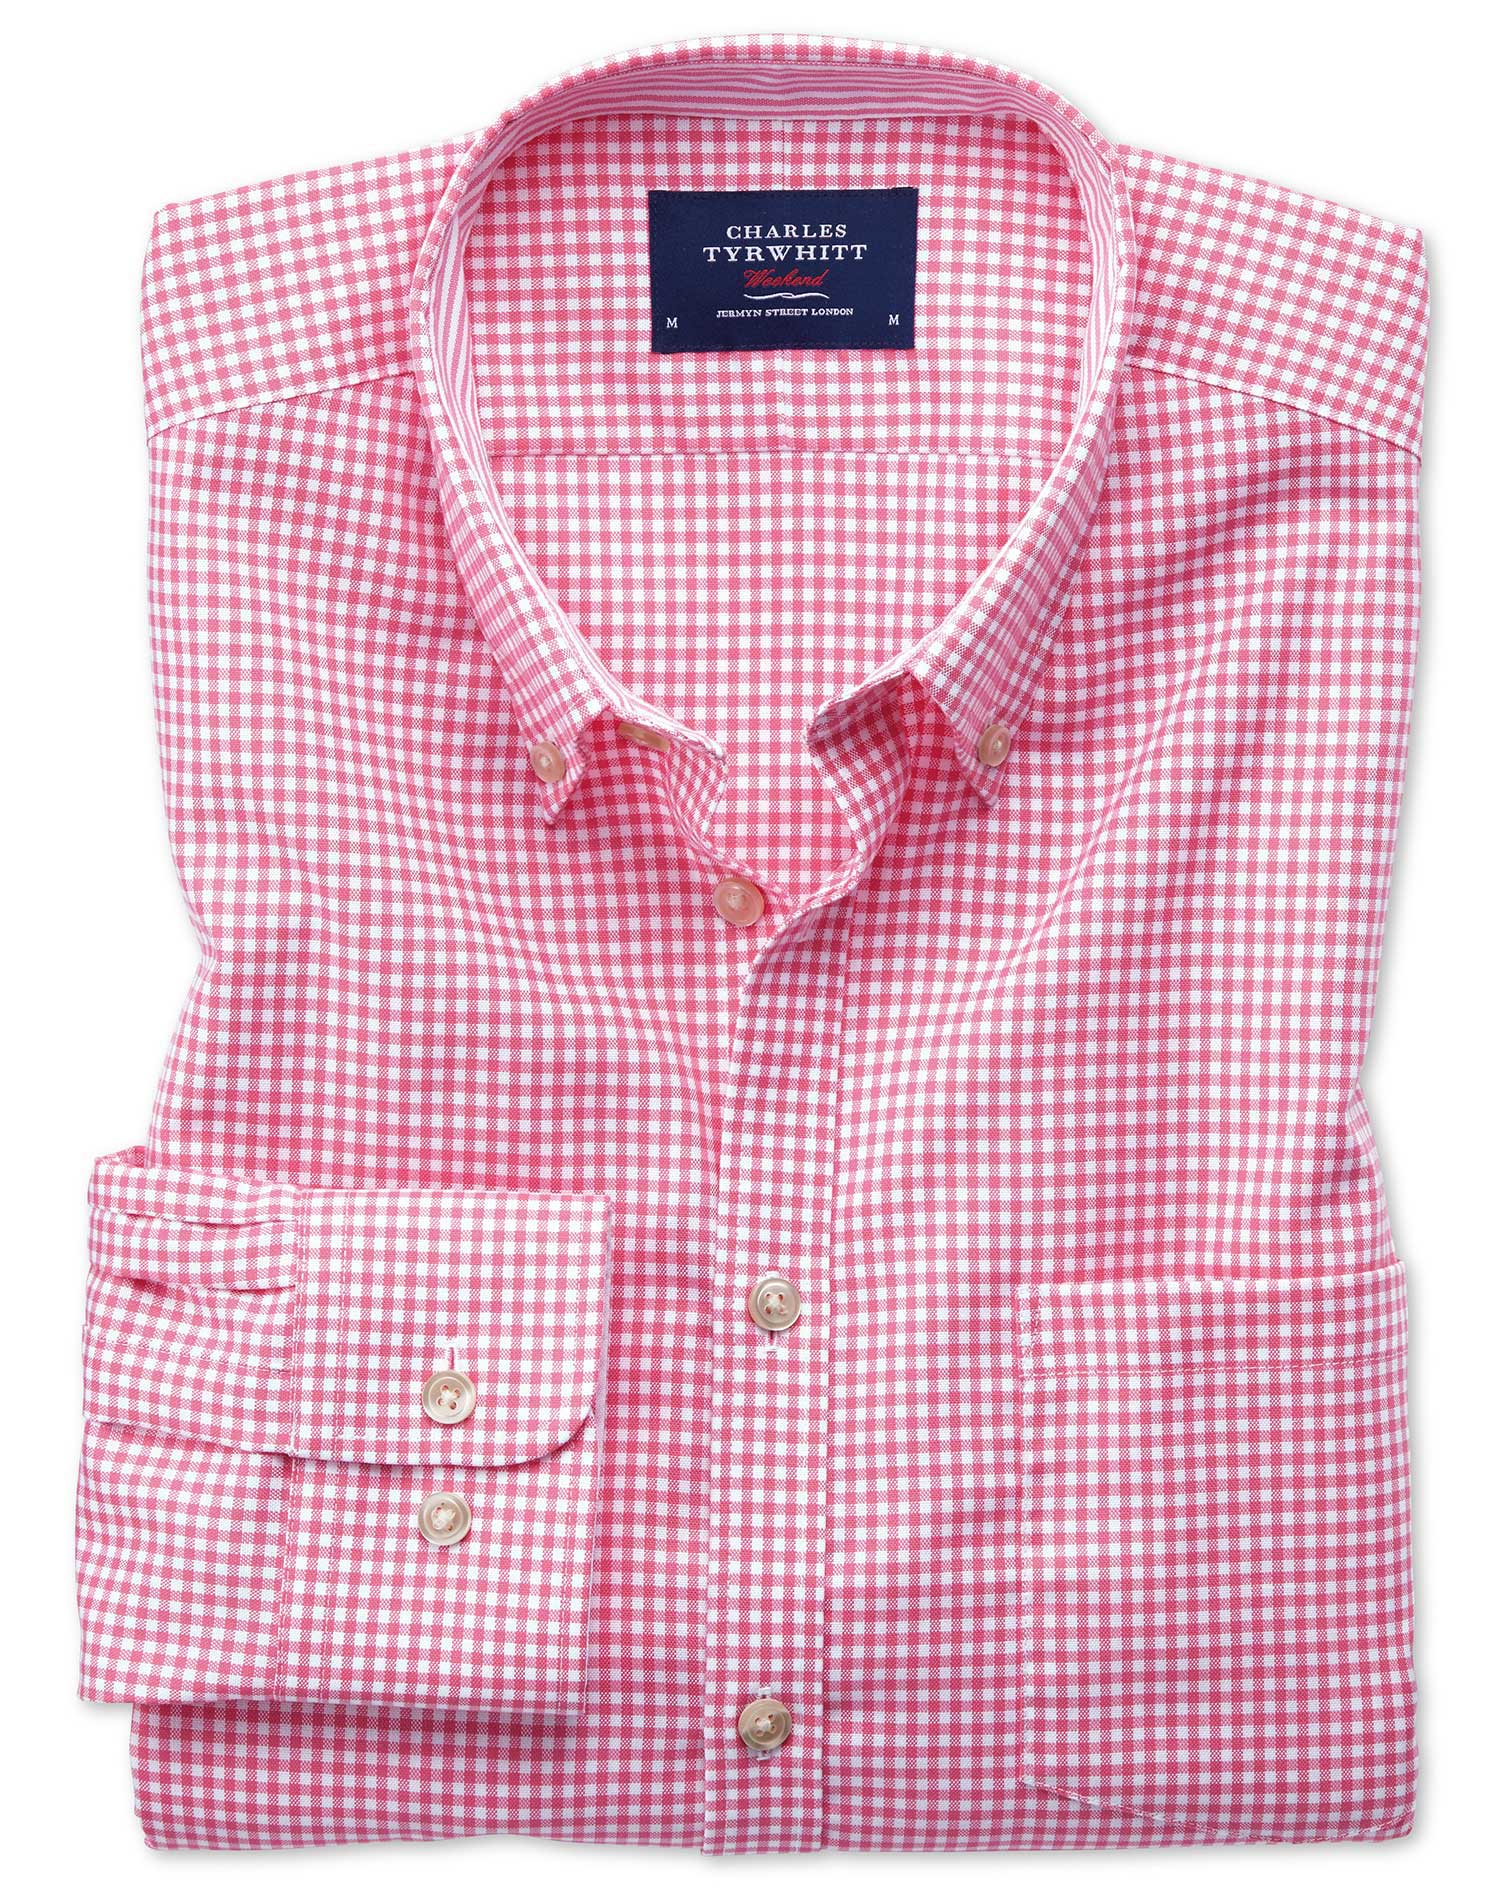 Classic Fit Button-Down Non-Iron Oxford Gingham Pink Cotton Shirt Single Cuff Size Medium by Charles